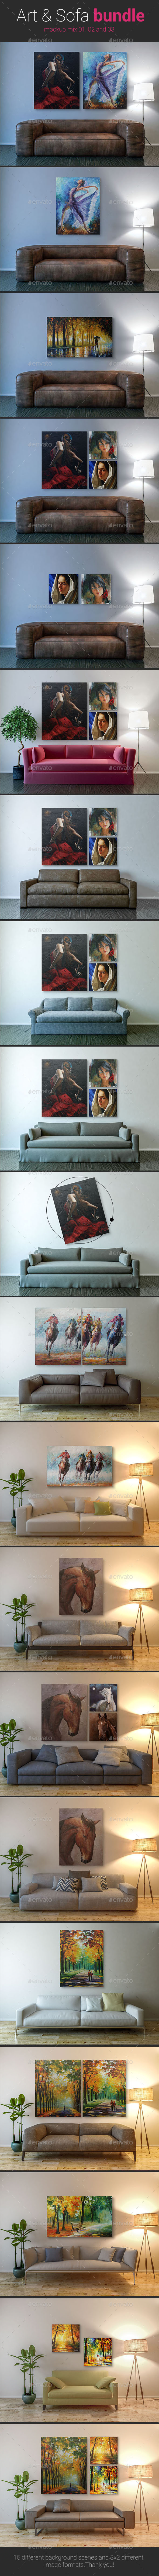 Art & Sofa Bundle - Posters Print